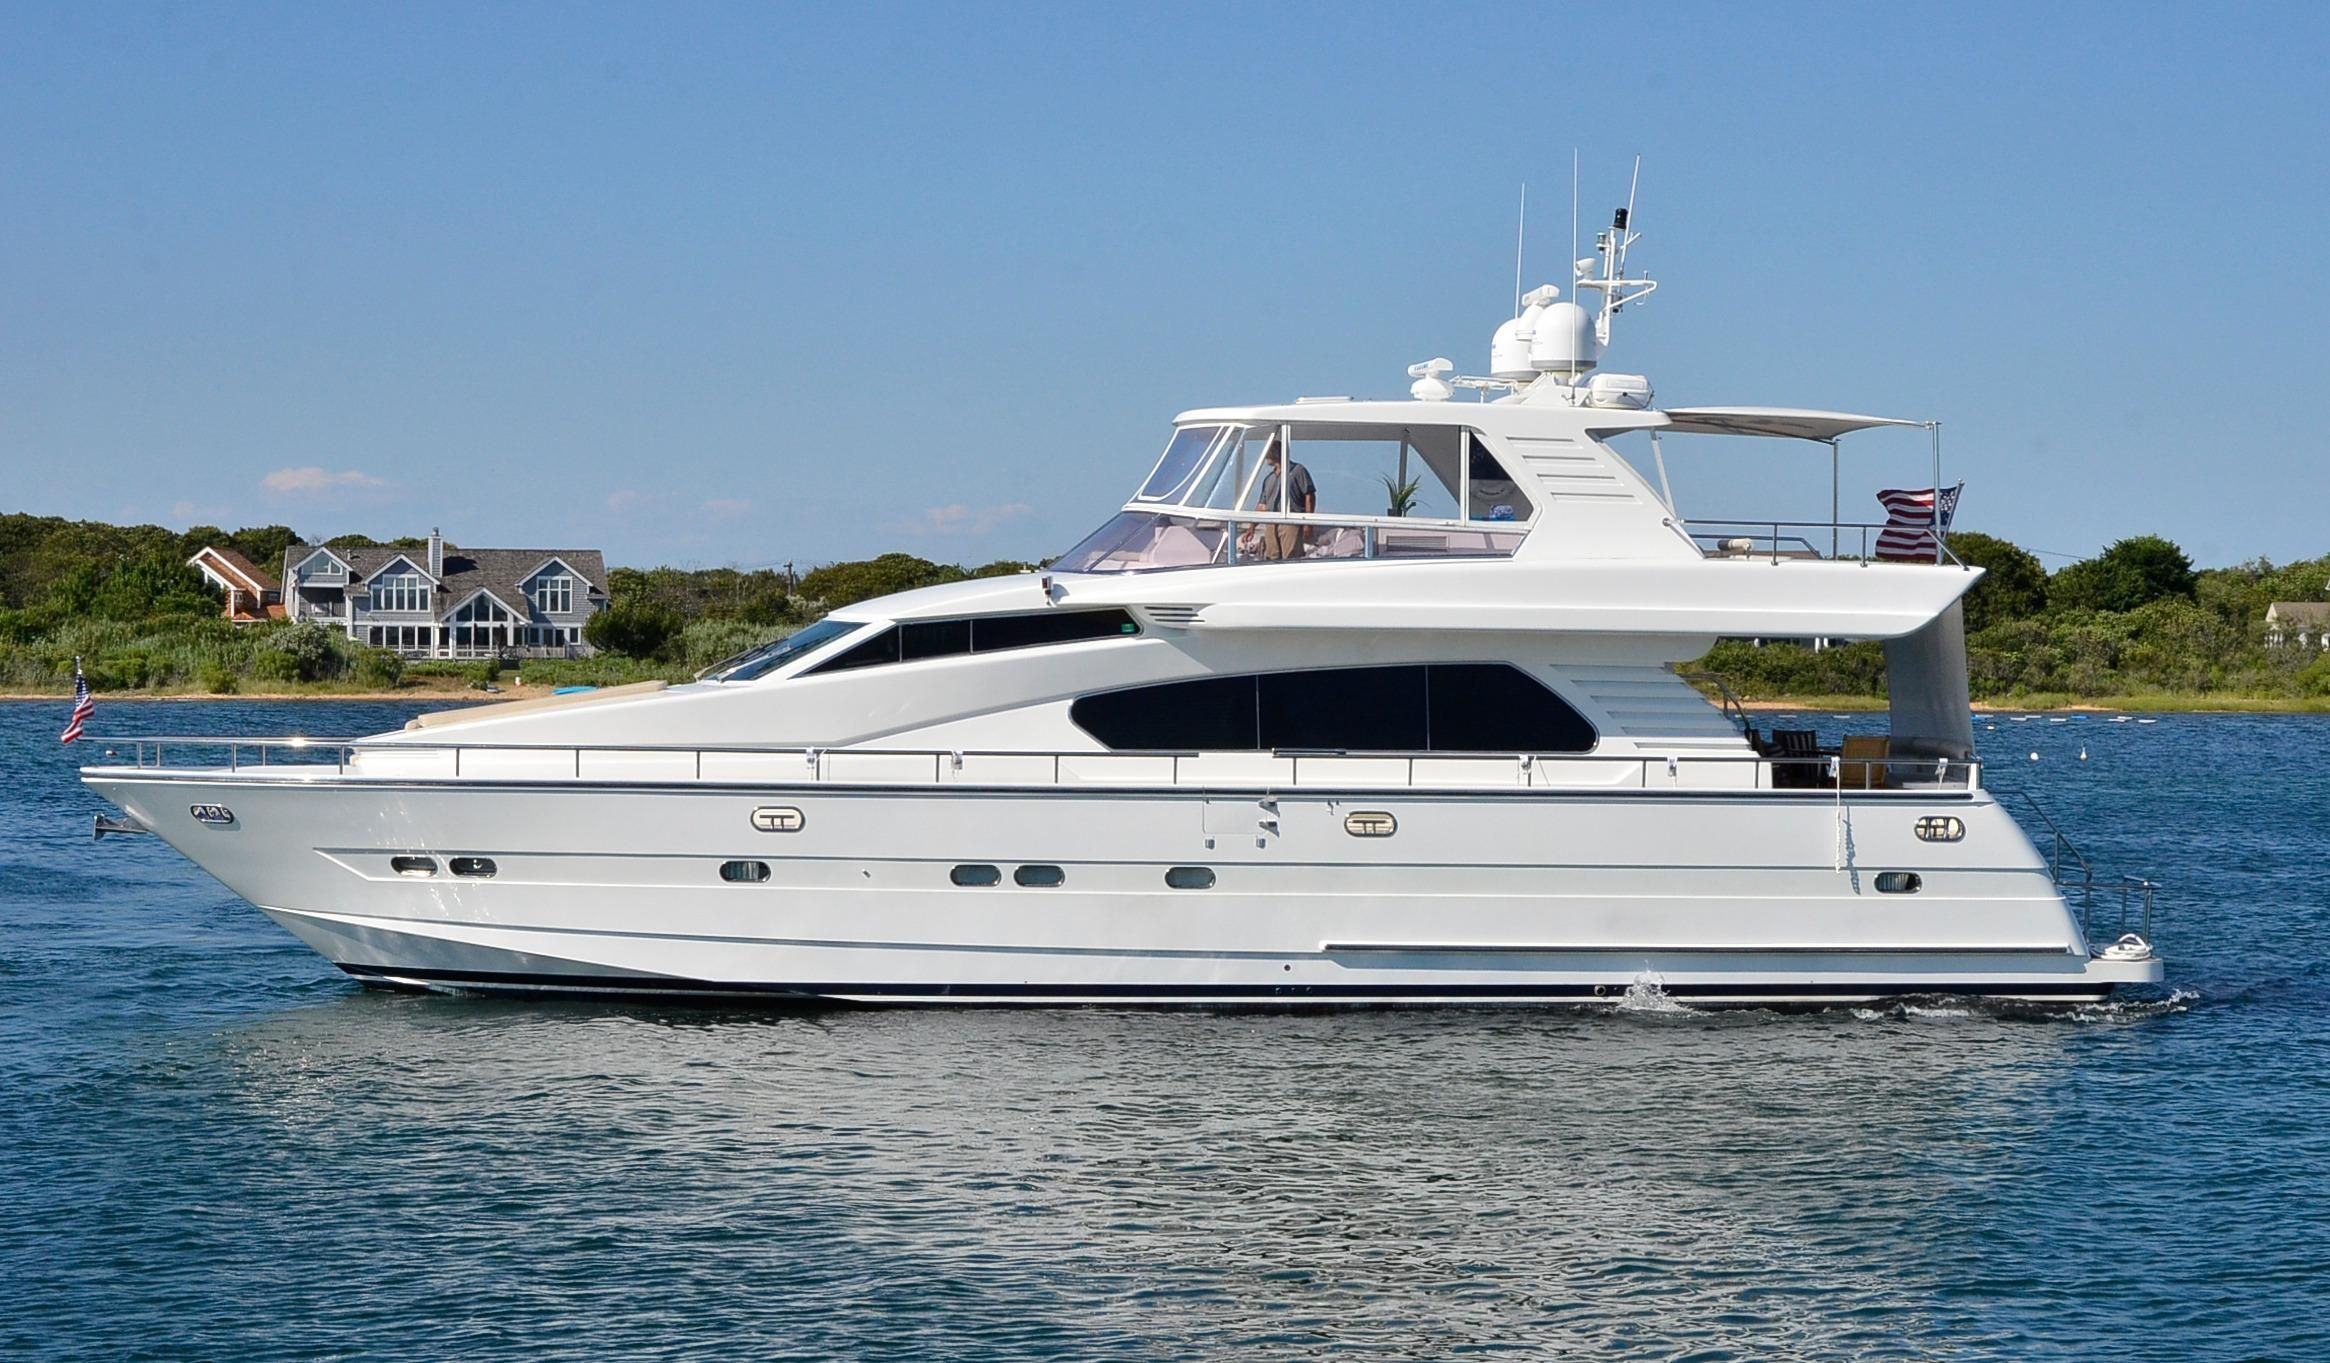 1999 horizon 70 motor yacht power boat for sale www for Large motor yachts for sale